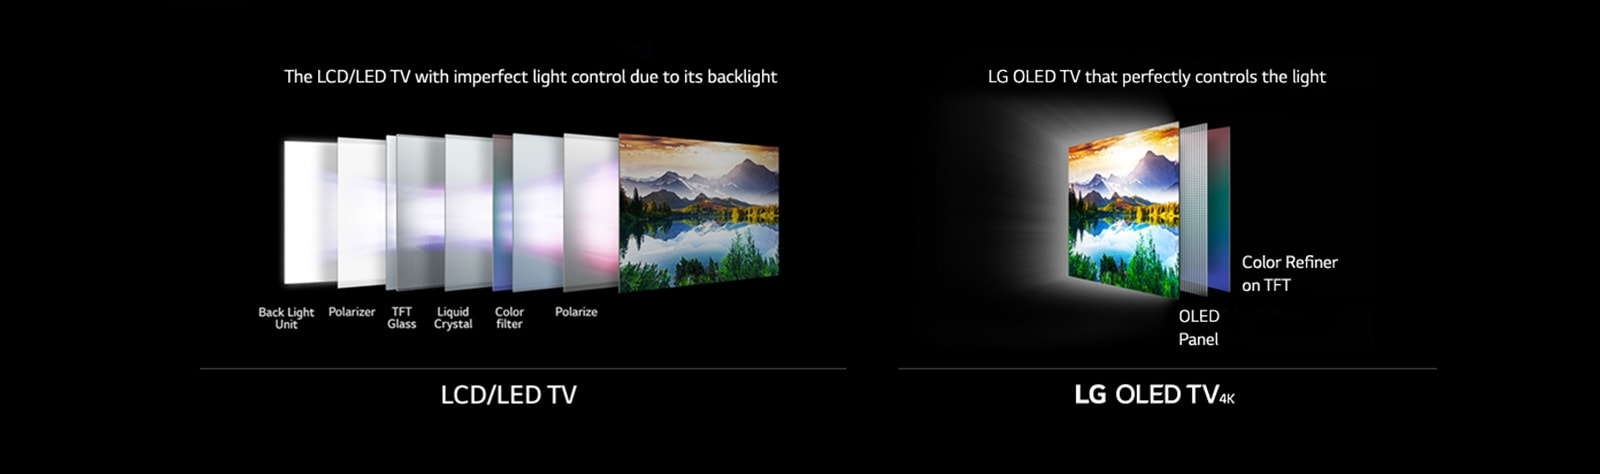 OLED TV Reliability: Burn-In & Lifespan – Get The Facts | LG USA